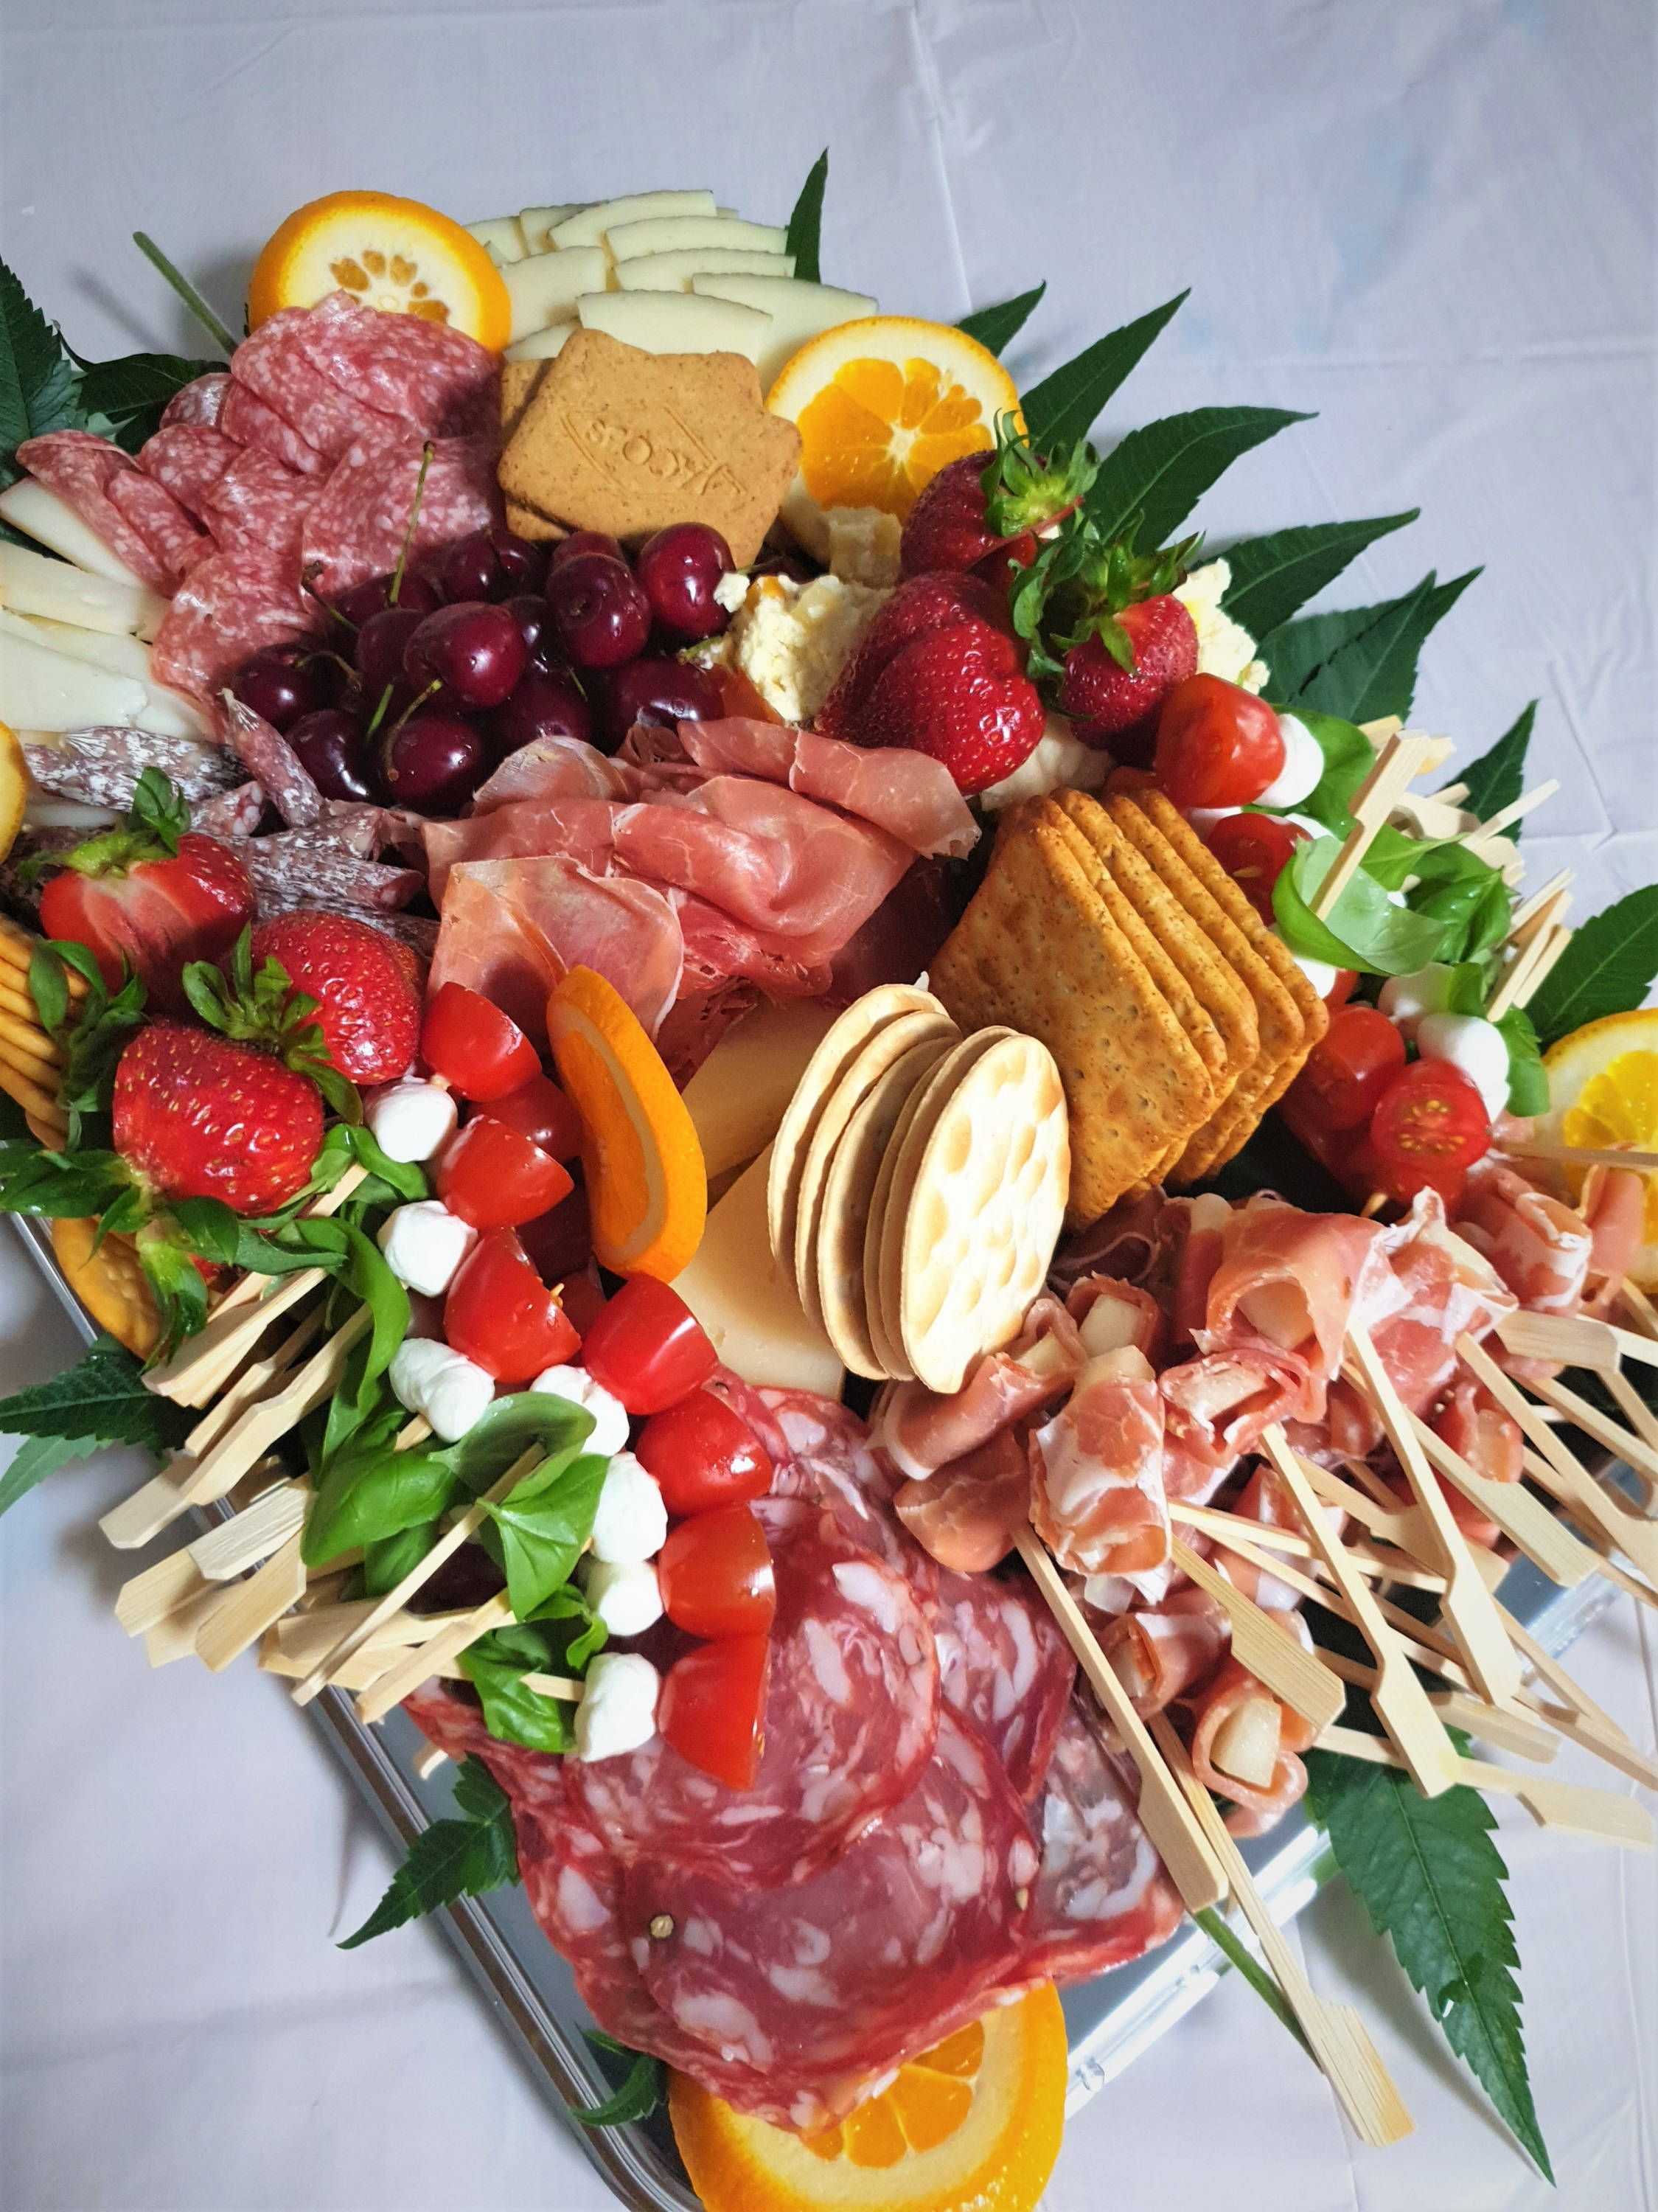 Grazing board with cured meats, cheese, fresh and dry fruit, vegetables, grapes, olives, tomatoes, dips and crackers. Catering menu offered by Kidbay Parties, London Loves Catering.